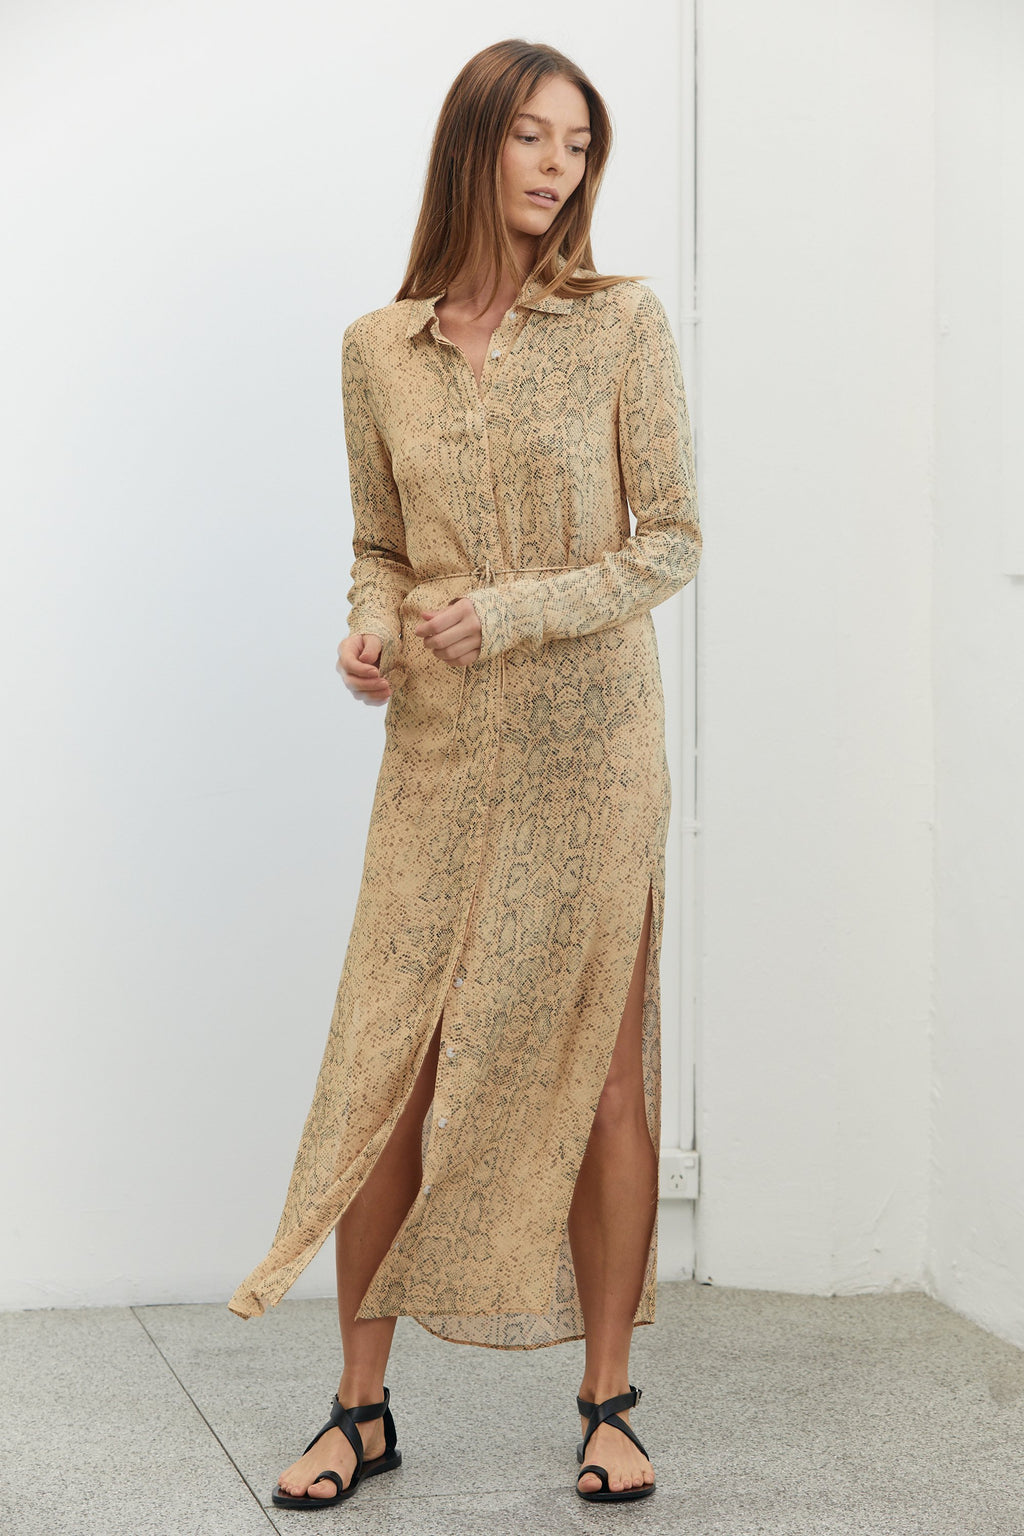 Third Form Animal Instincts Maxi Shirt Dress - Snake